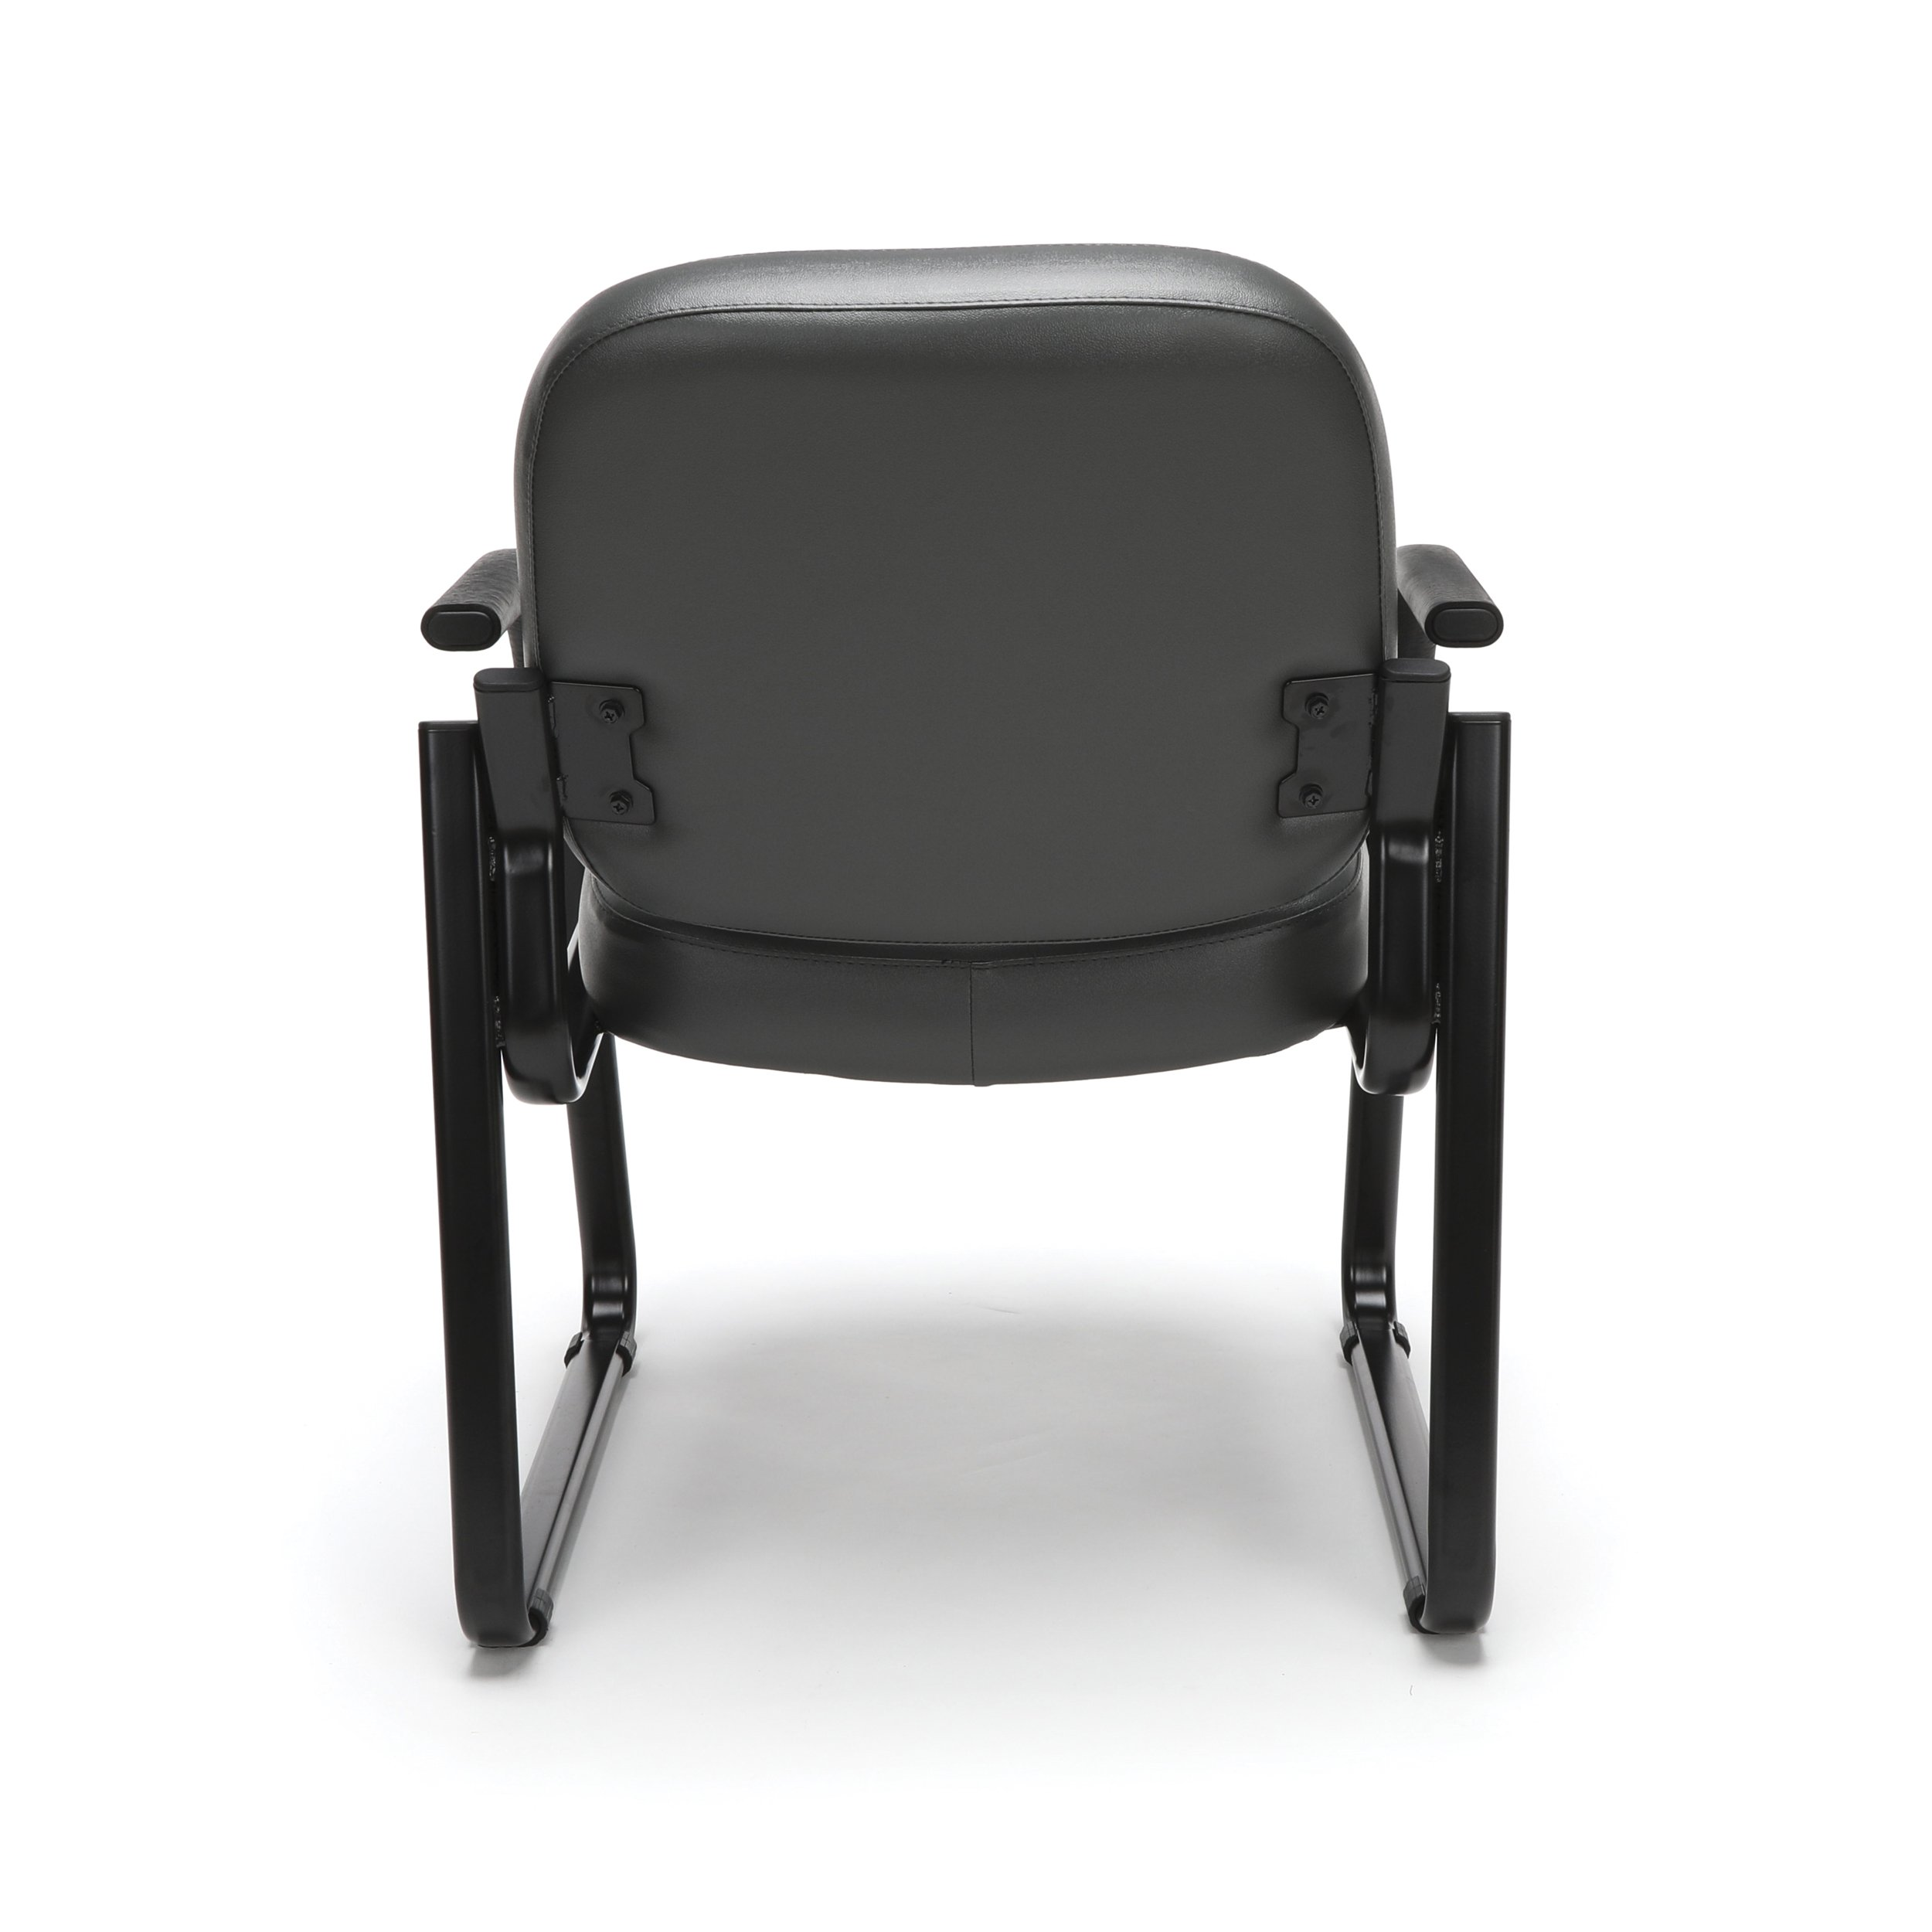 OFM Reception Chair with Arms - Anti-Microbial/Anti-Bacterial Vinyl Guest Chair, Charcoal (403-VAM) by OFM (Image #5)